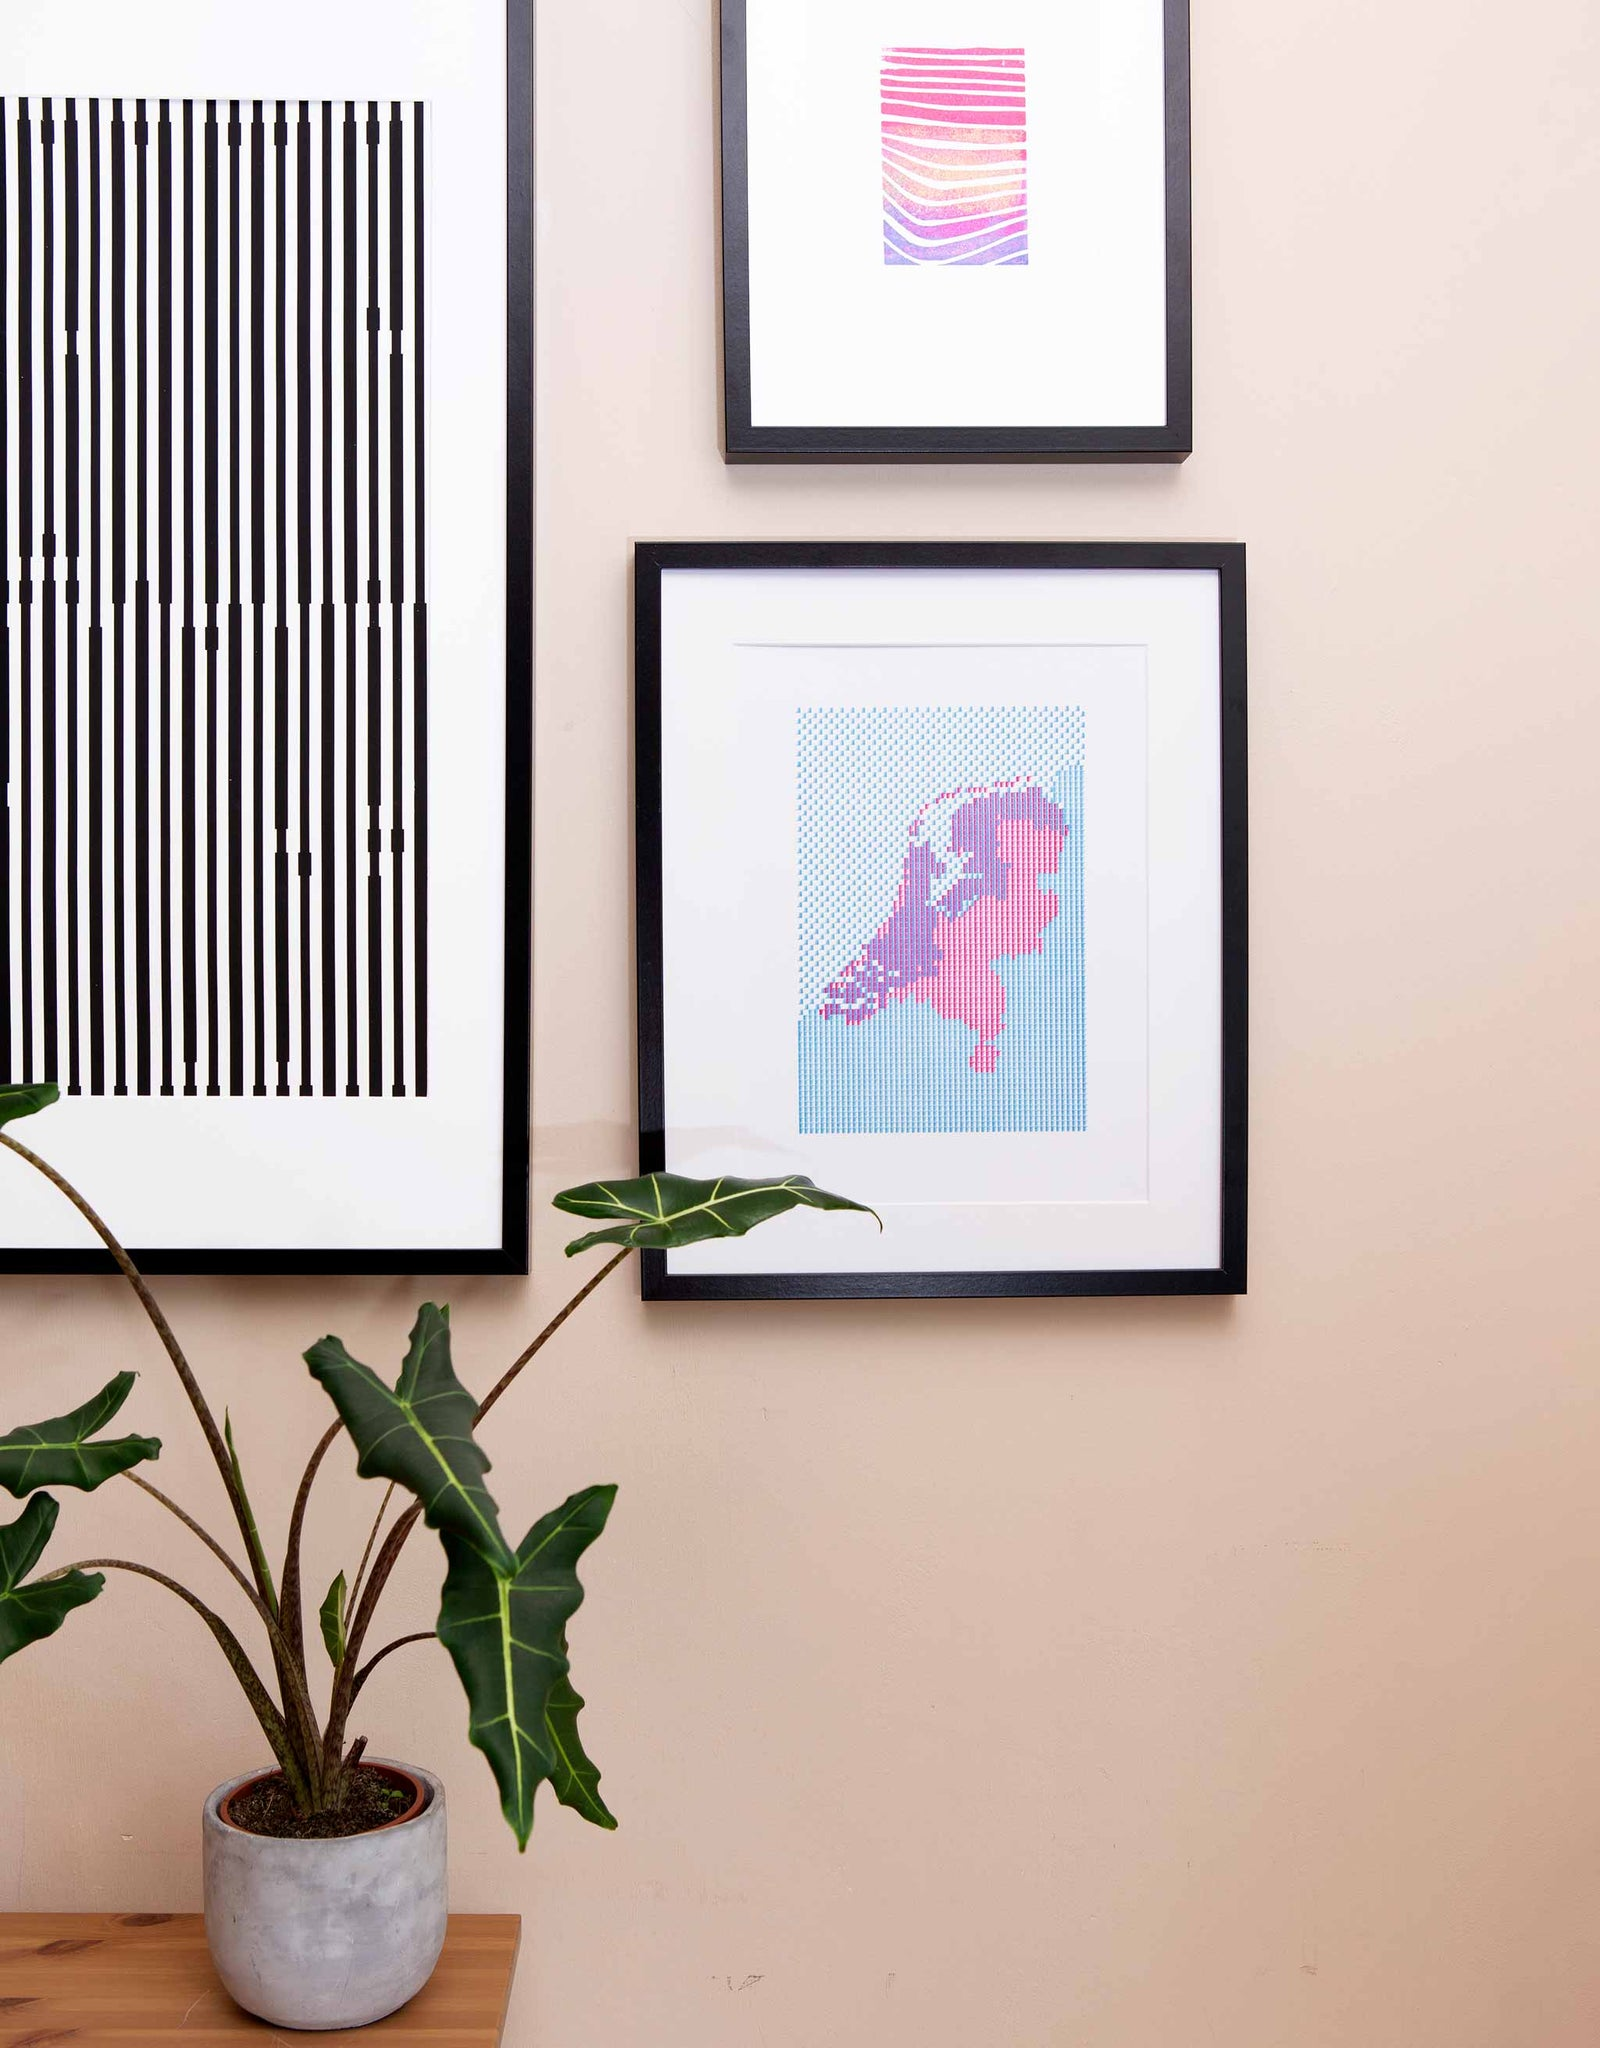 Letterpress patterned map of The Netherlands in magenta and blue. Shown in black frame on wall with plant and other art.